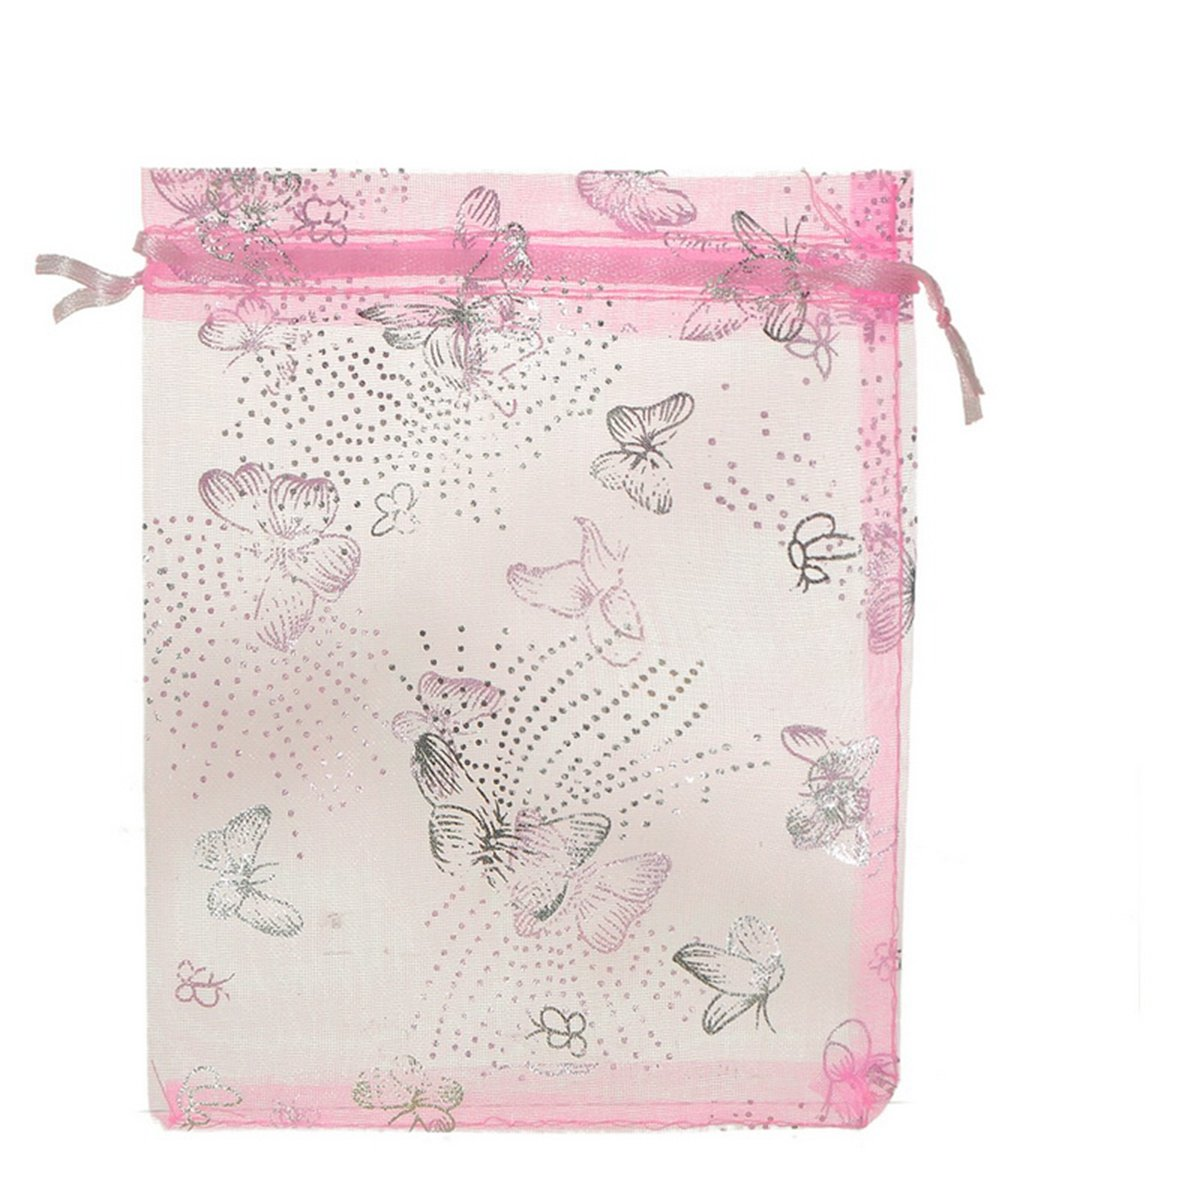 HooAMI 25pcs Butterfly Pink Organza Drawstring Pouches Jewelry Party Wedding Christmas Favor Gift Bags 13cm x16cm BETY81205